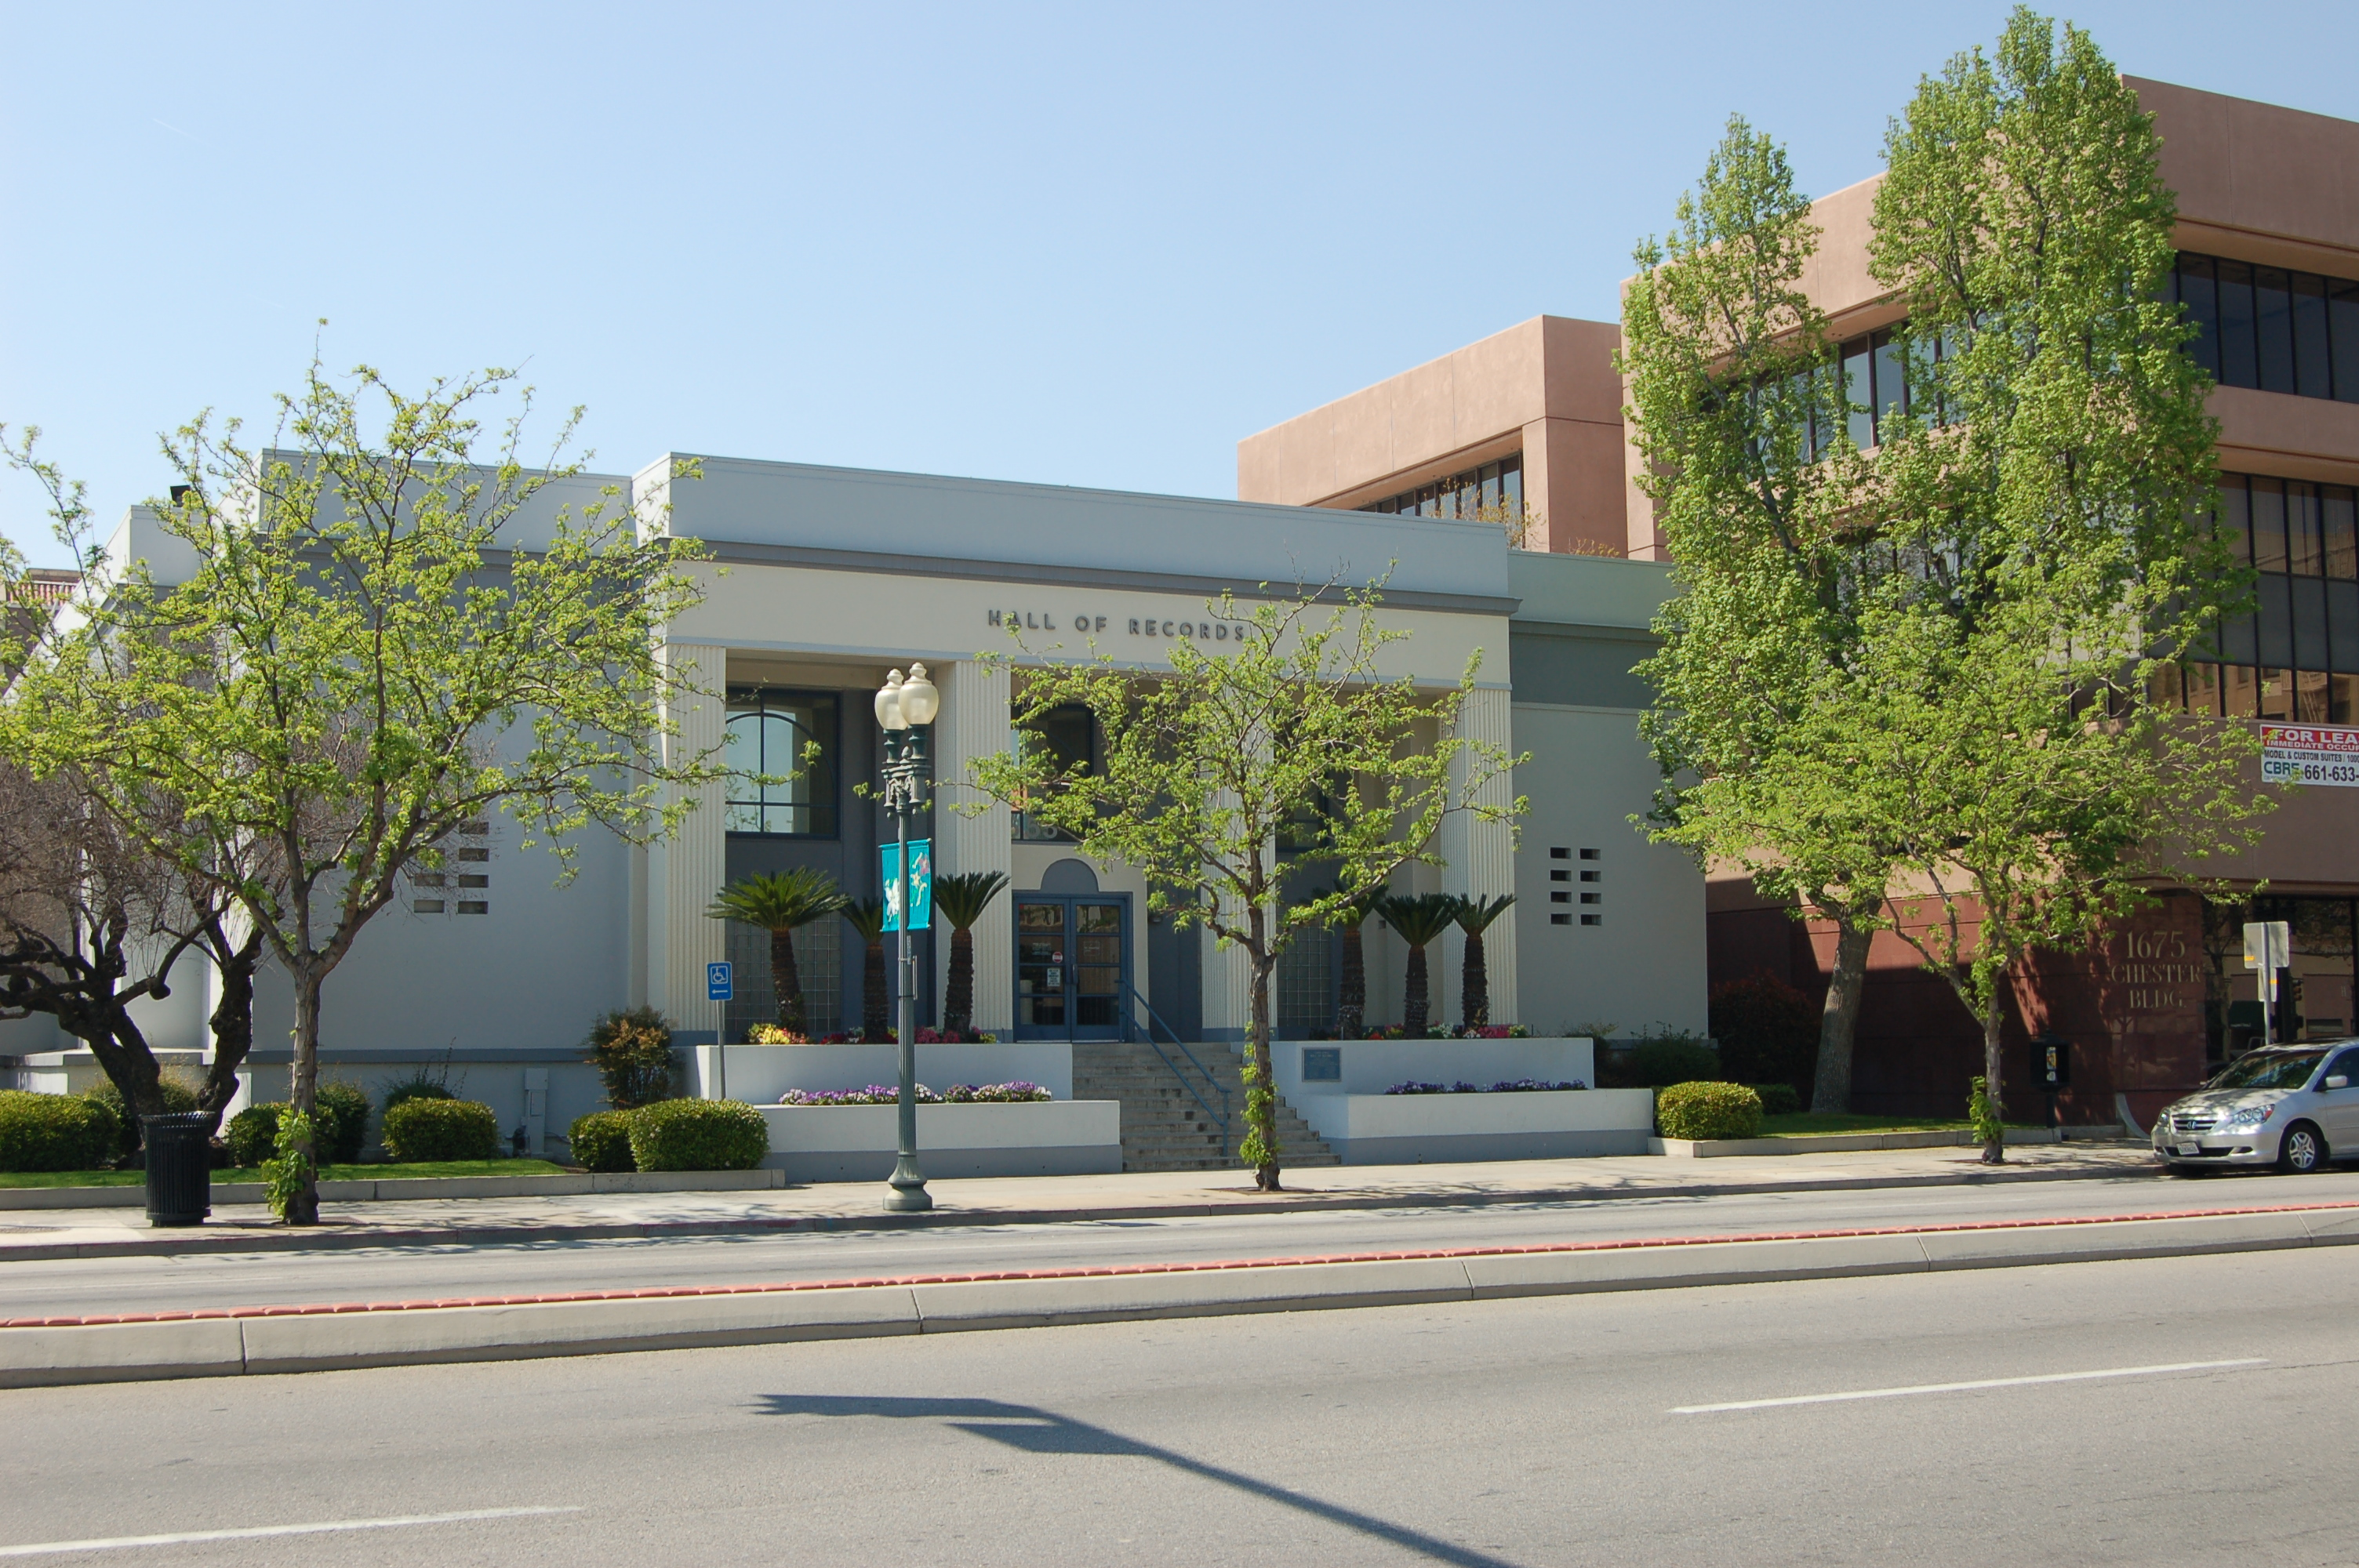 Kern County Hall of Records - Wikipedia